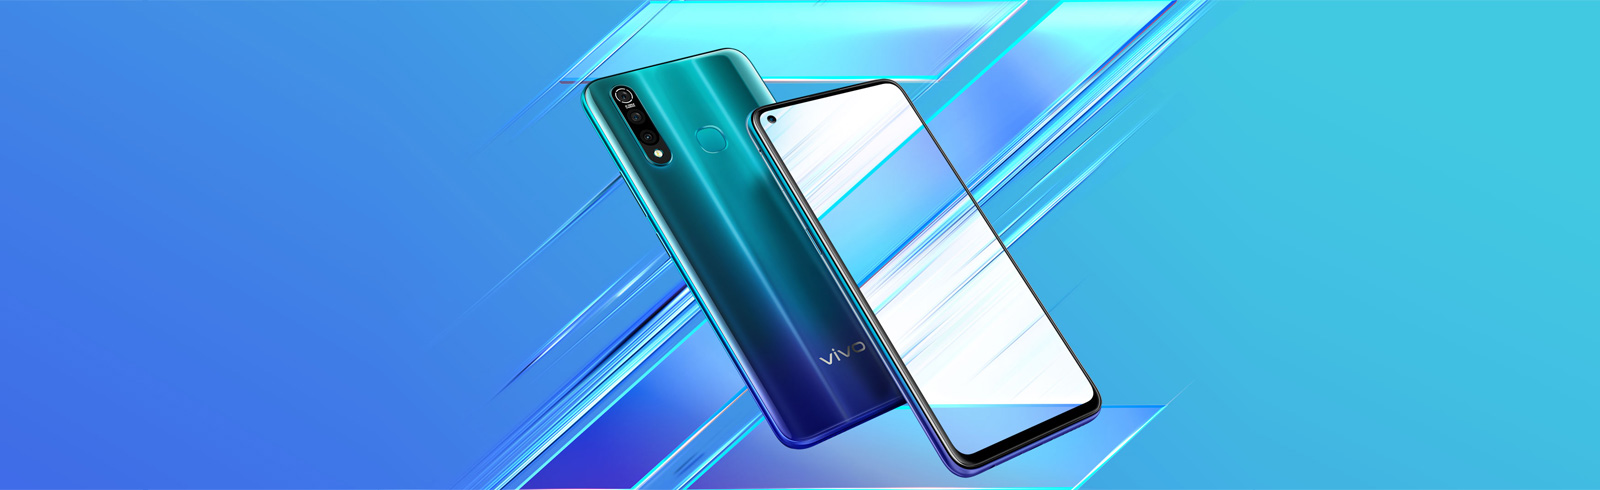 Vivo Z5x is announced with a punch-hole display and low price